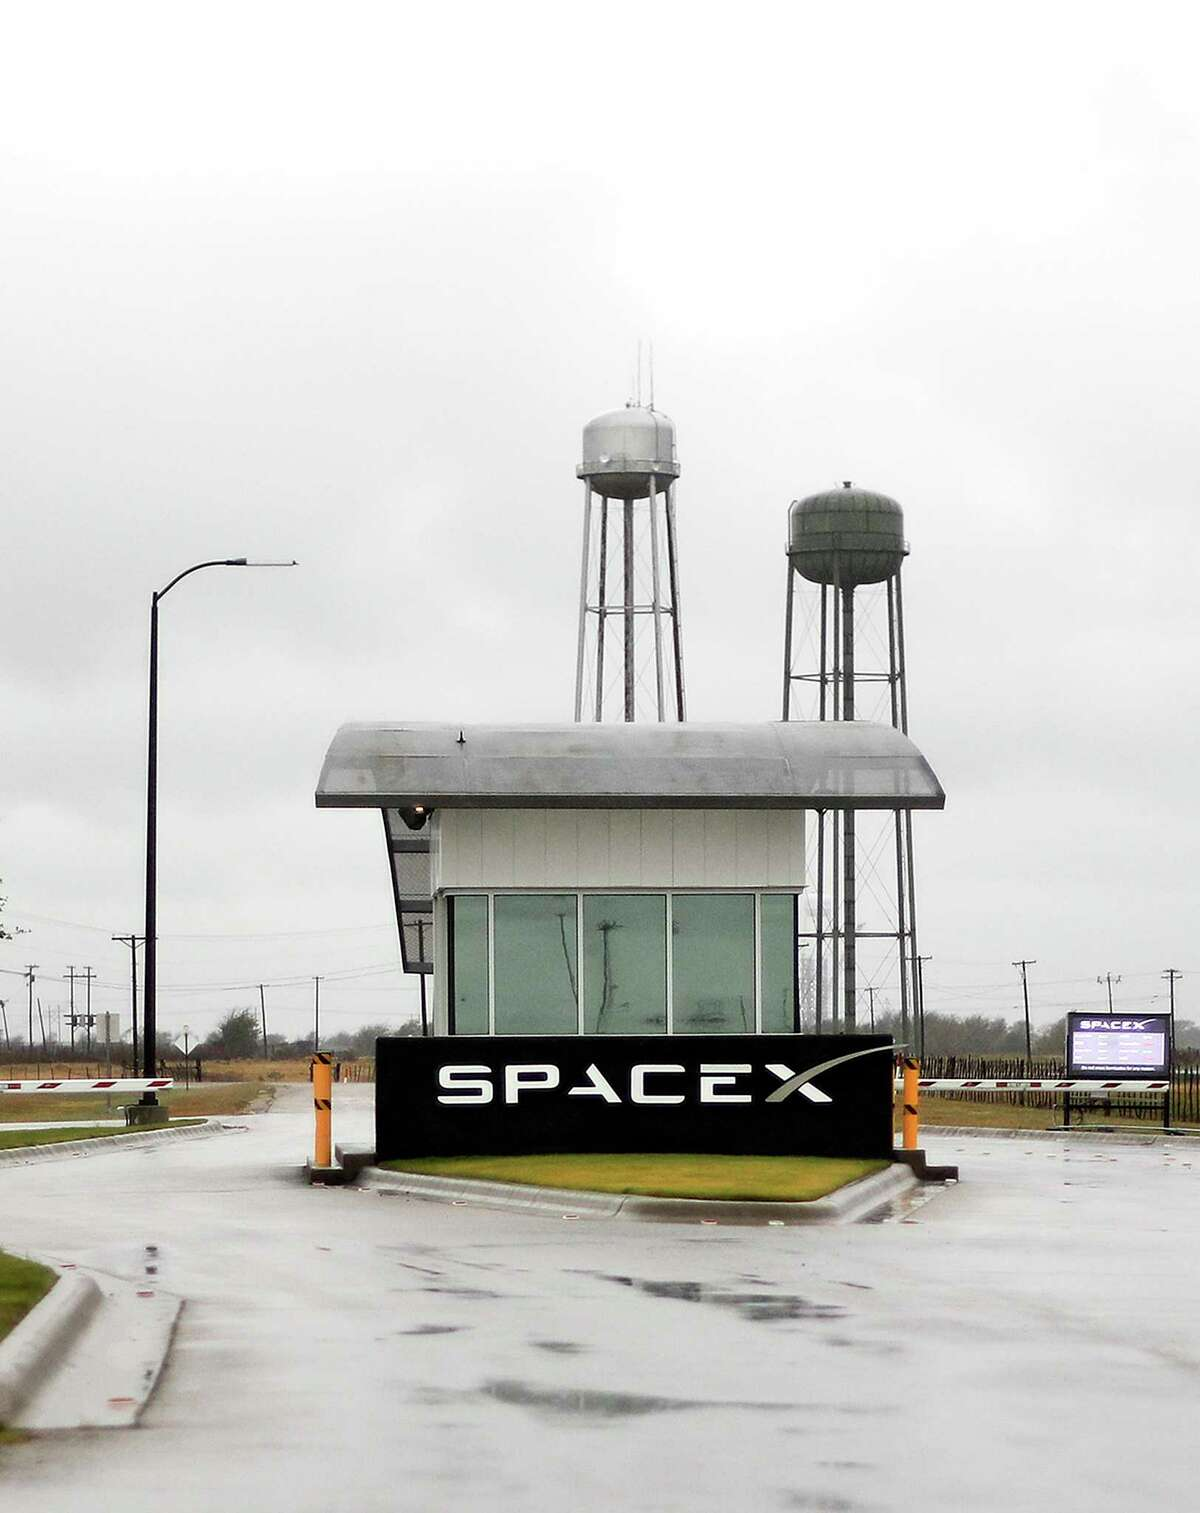 Photos of the SpaceX entrance on Wednesday, Nov. 8, 2017, in McGregor. ( Elizabeth Conley / Houston Chronicle )